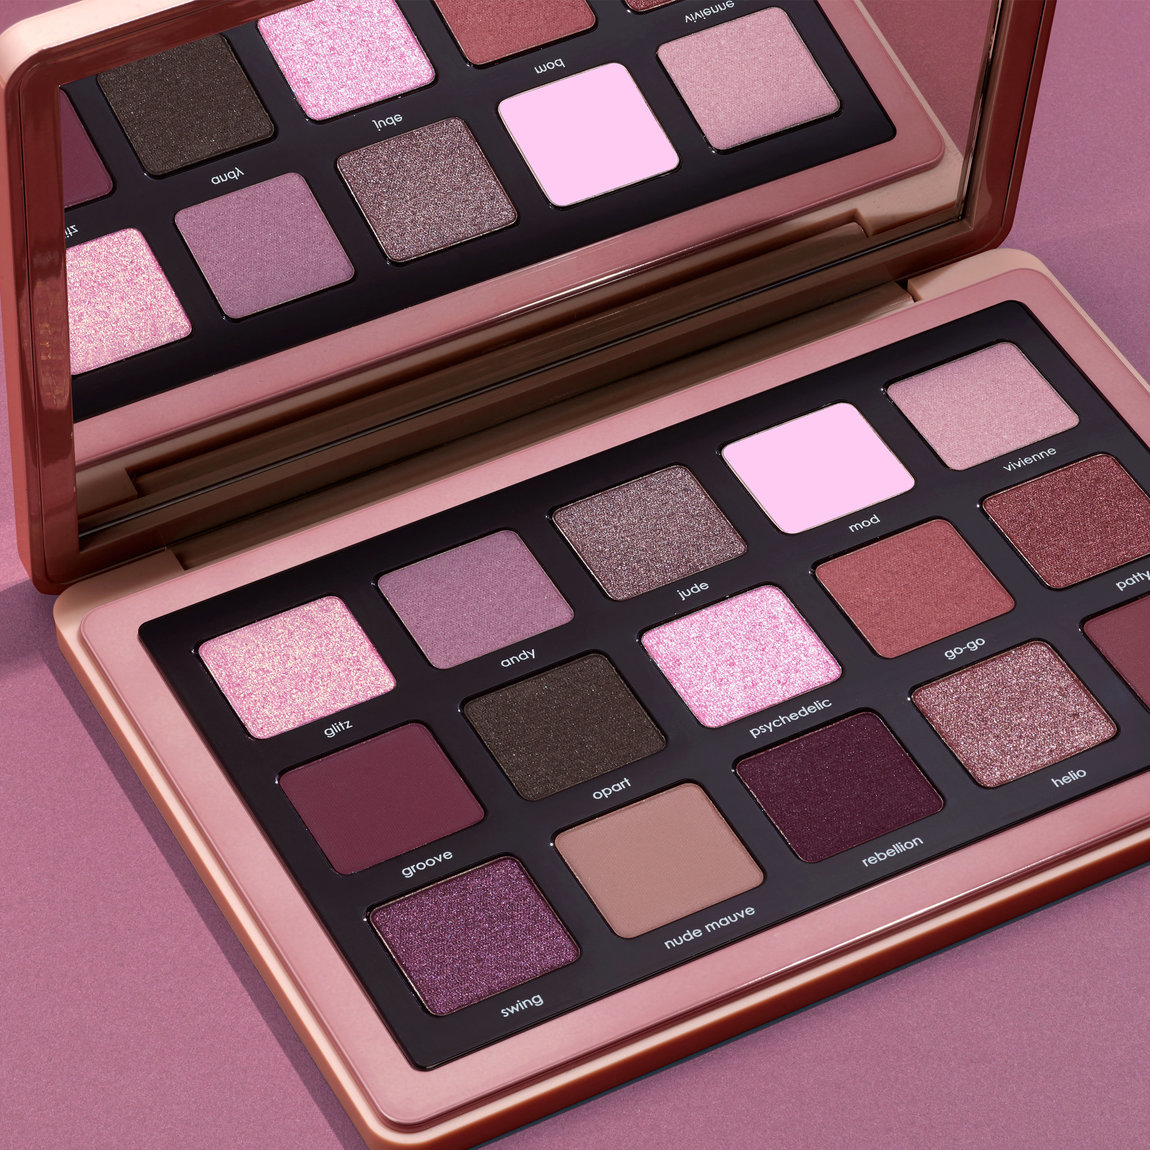 Alternate product image for Retro Palette shown with the description.